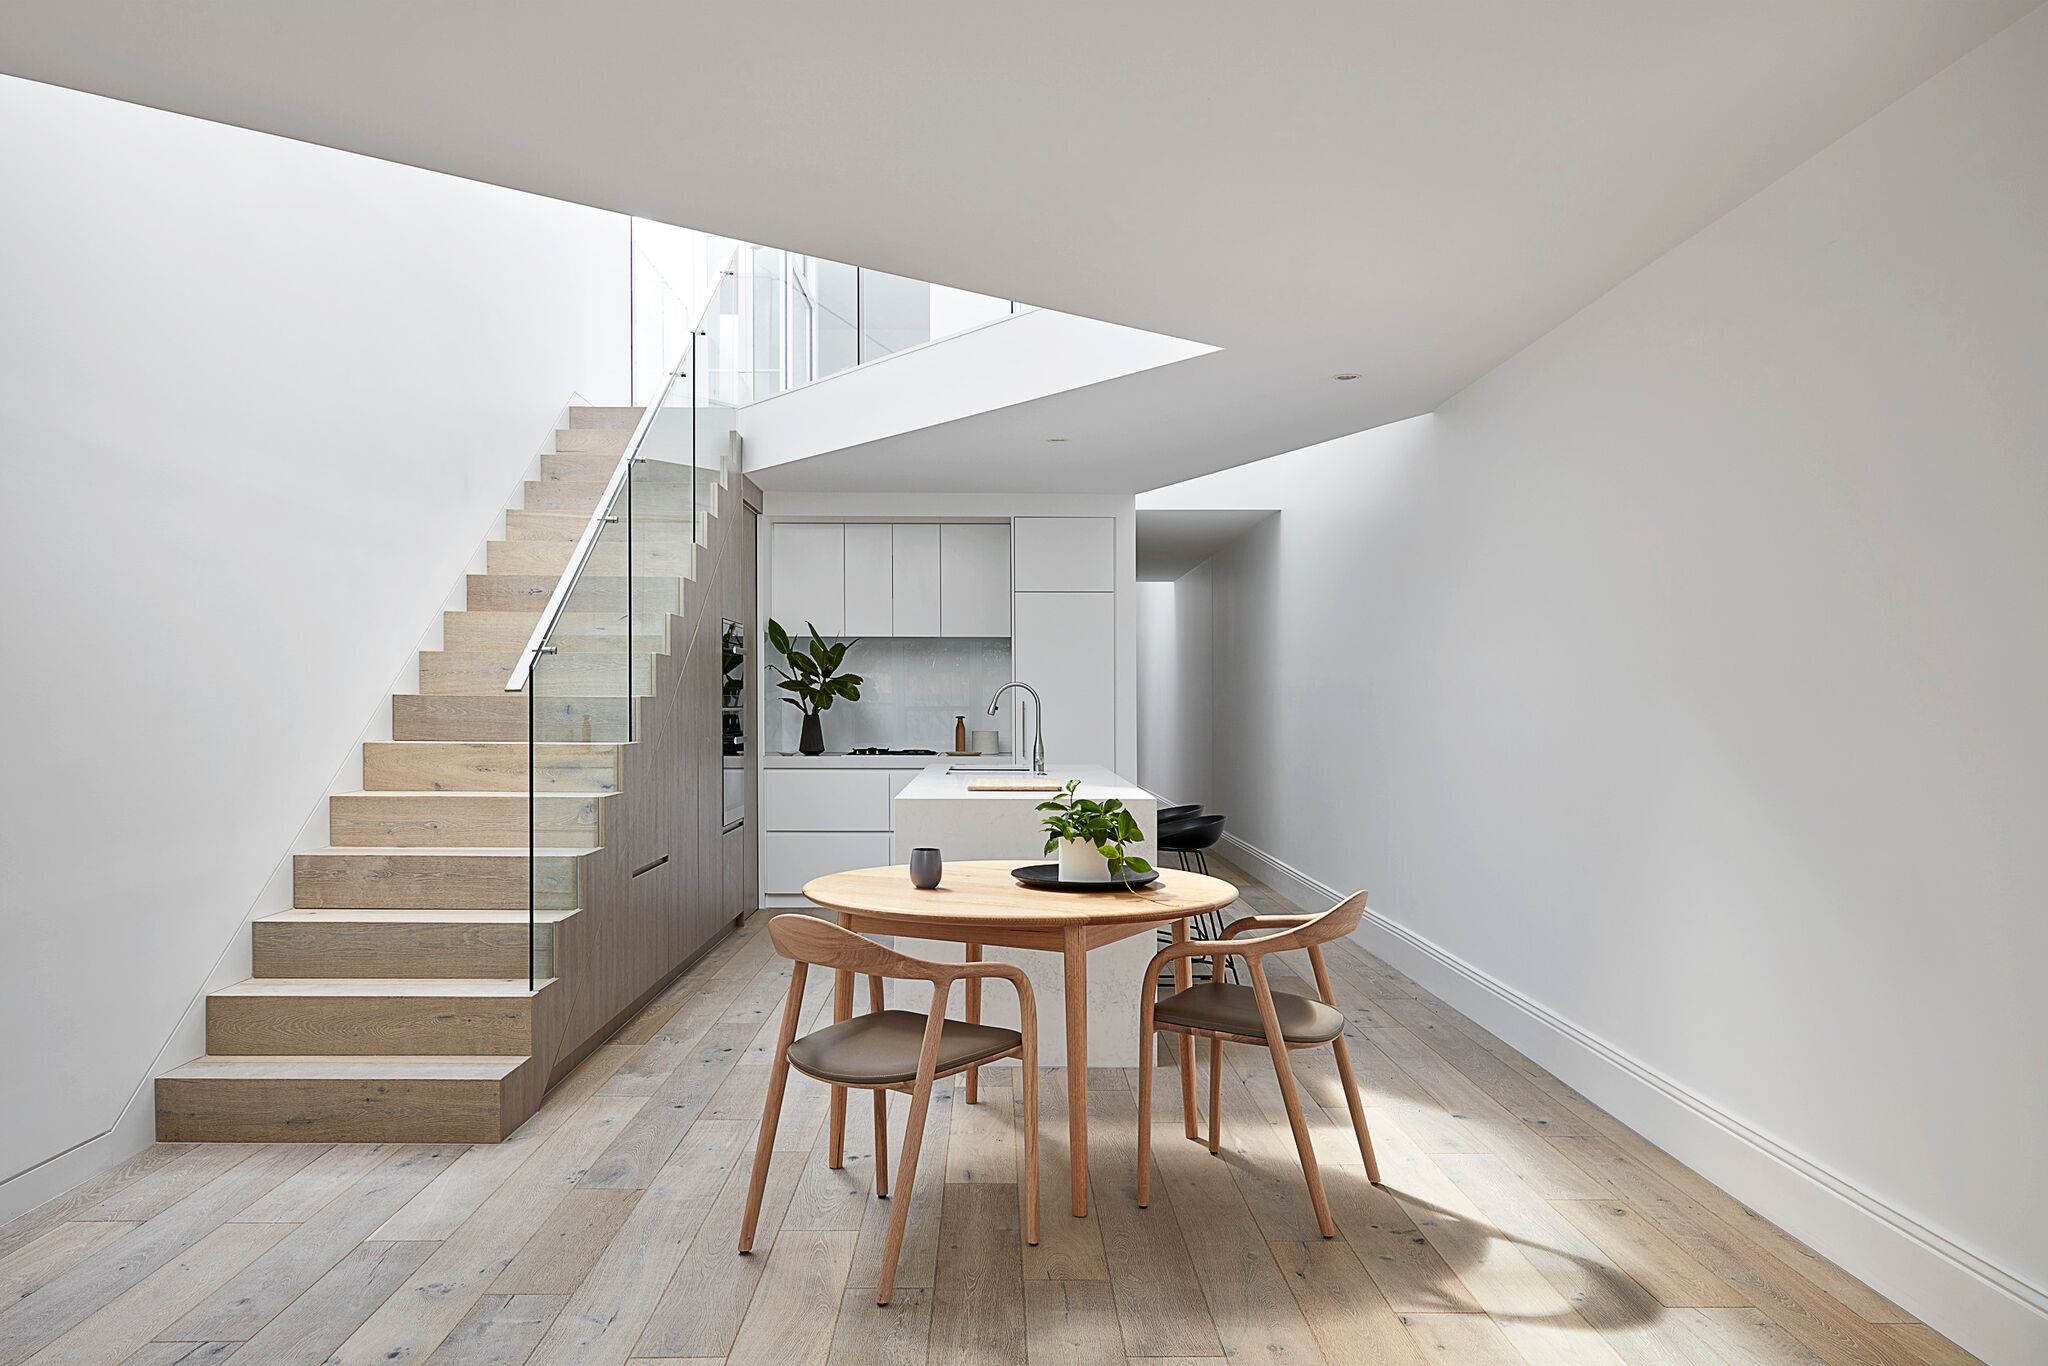 Gallery Of Oban Street By Mittelman Amsellem Architects Local Australian Architecture & Design South Yarra, Melbourne Image 3